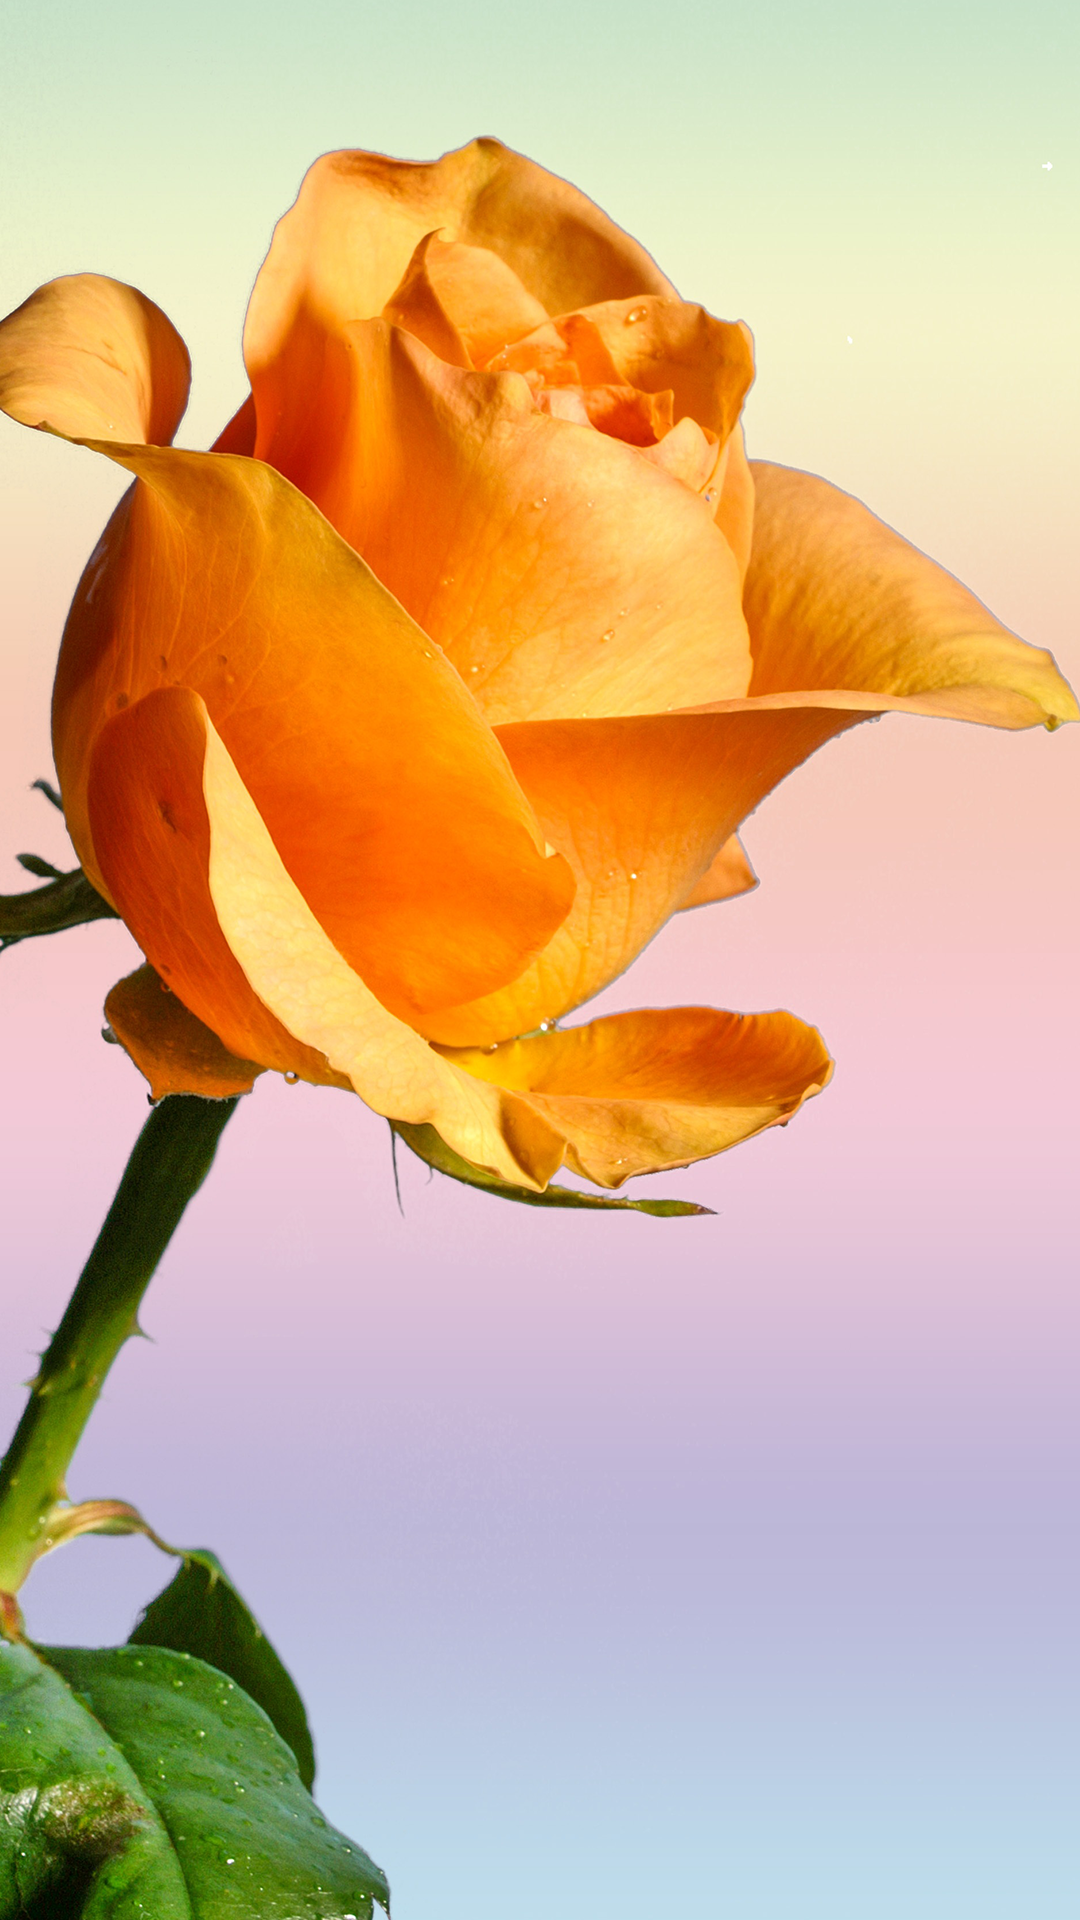 Download Our Hd Yellow Rose Wallpaper For Android Phones 0575